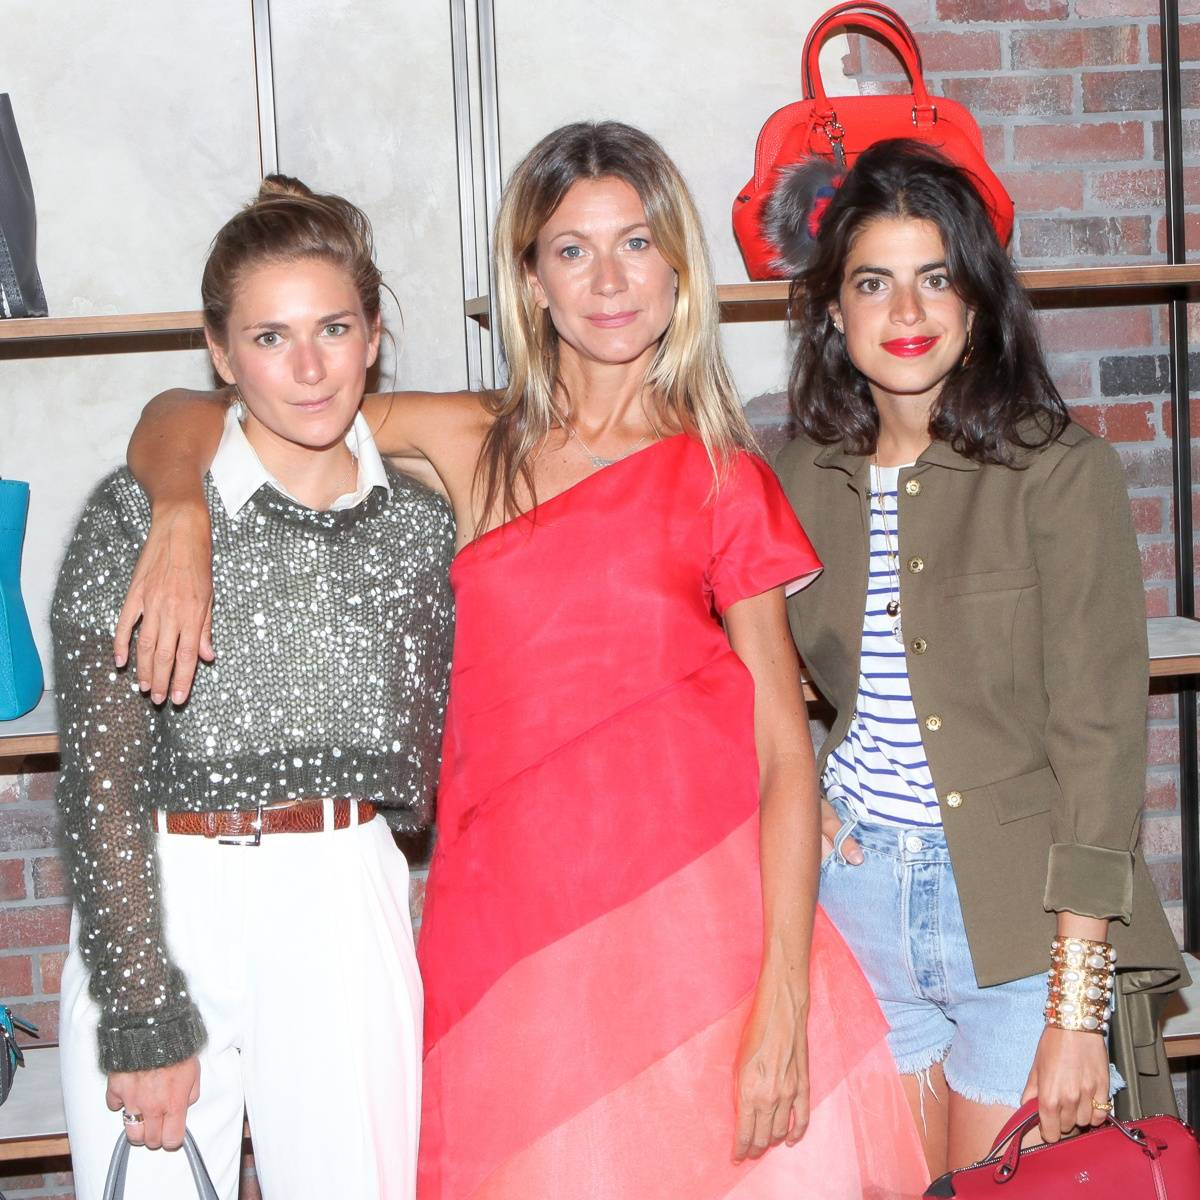 Claire Distenfeld, Natalie Joos, and Leandra Medine. Photo by Billy Farrell